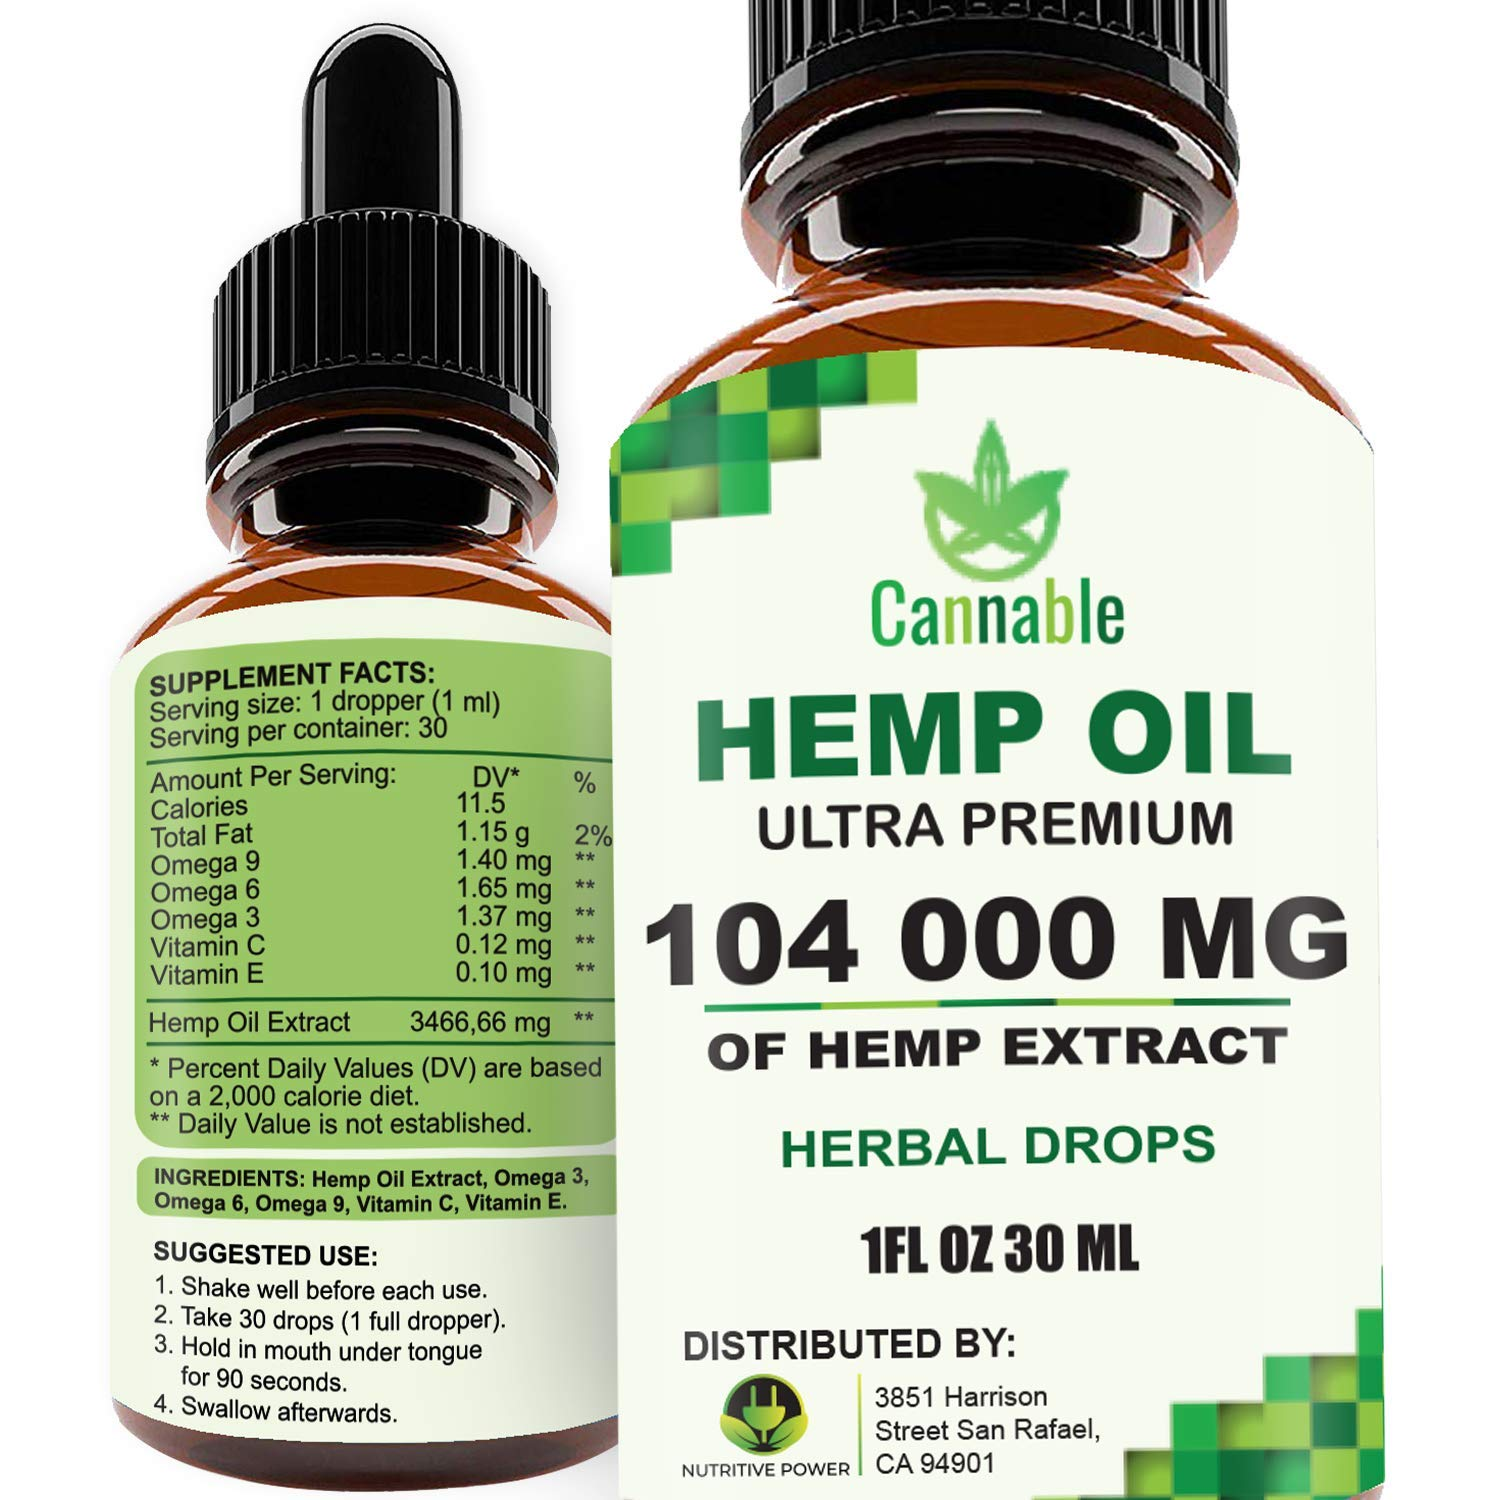 Hemp Oil Extract 104 000 mg, All-Natural Drops for Pain, Stress, Anxiety Relief, Deep Restful Sleep by Cannable